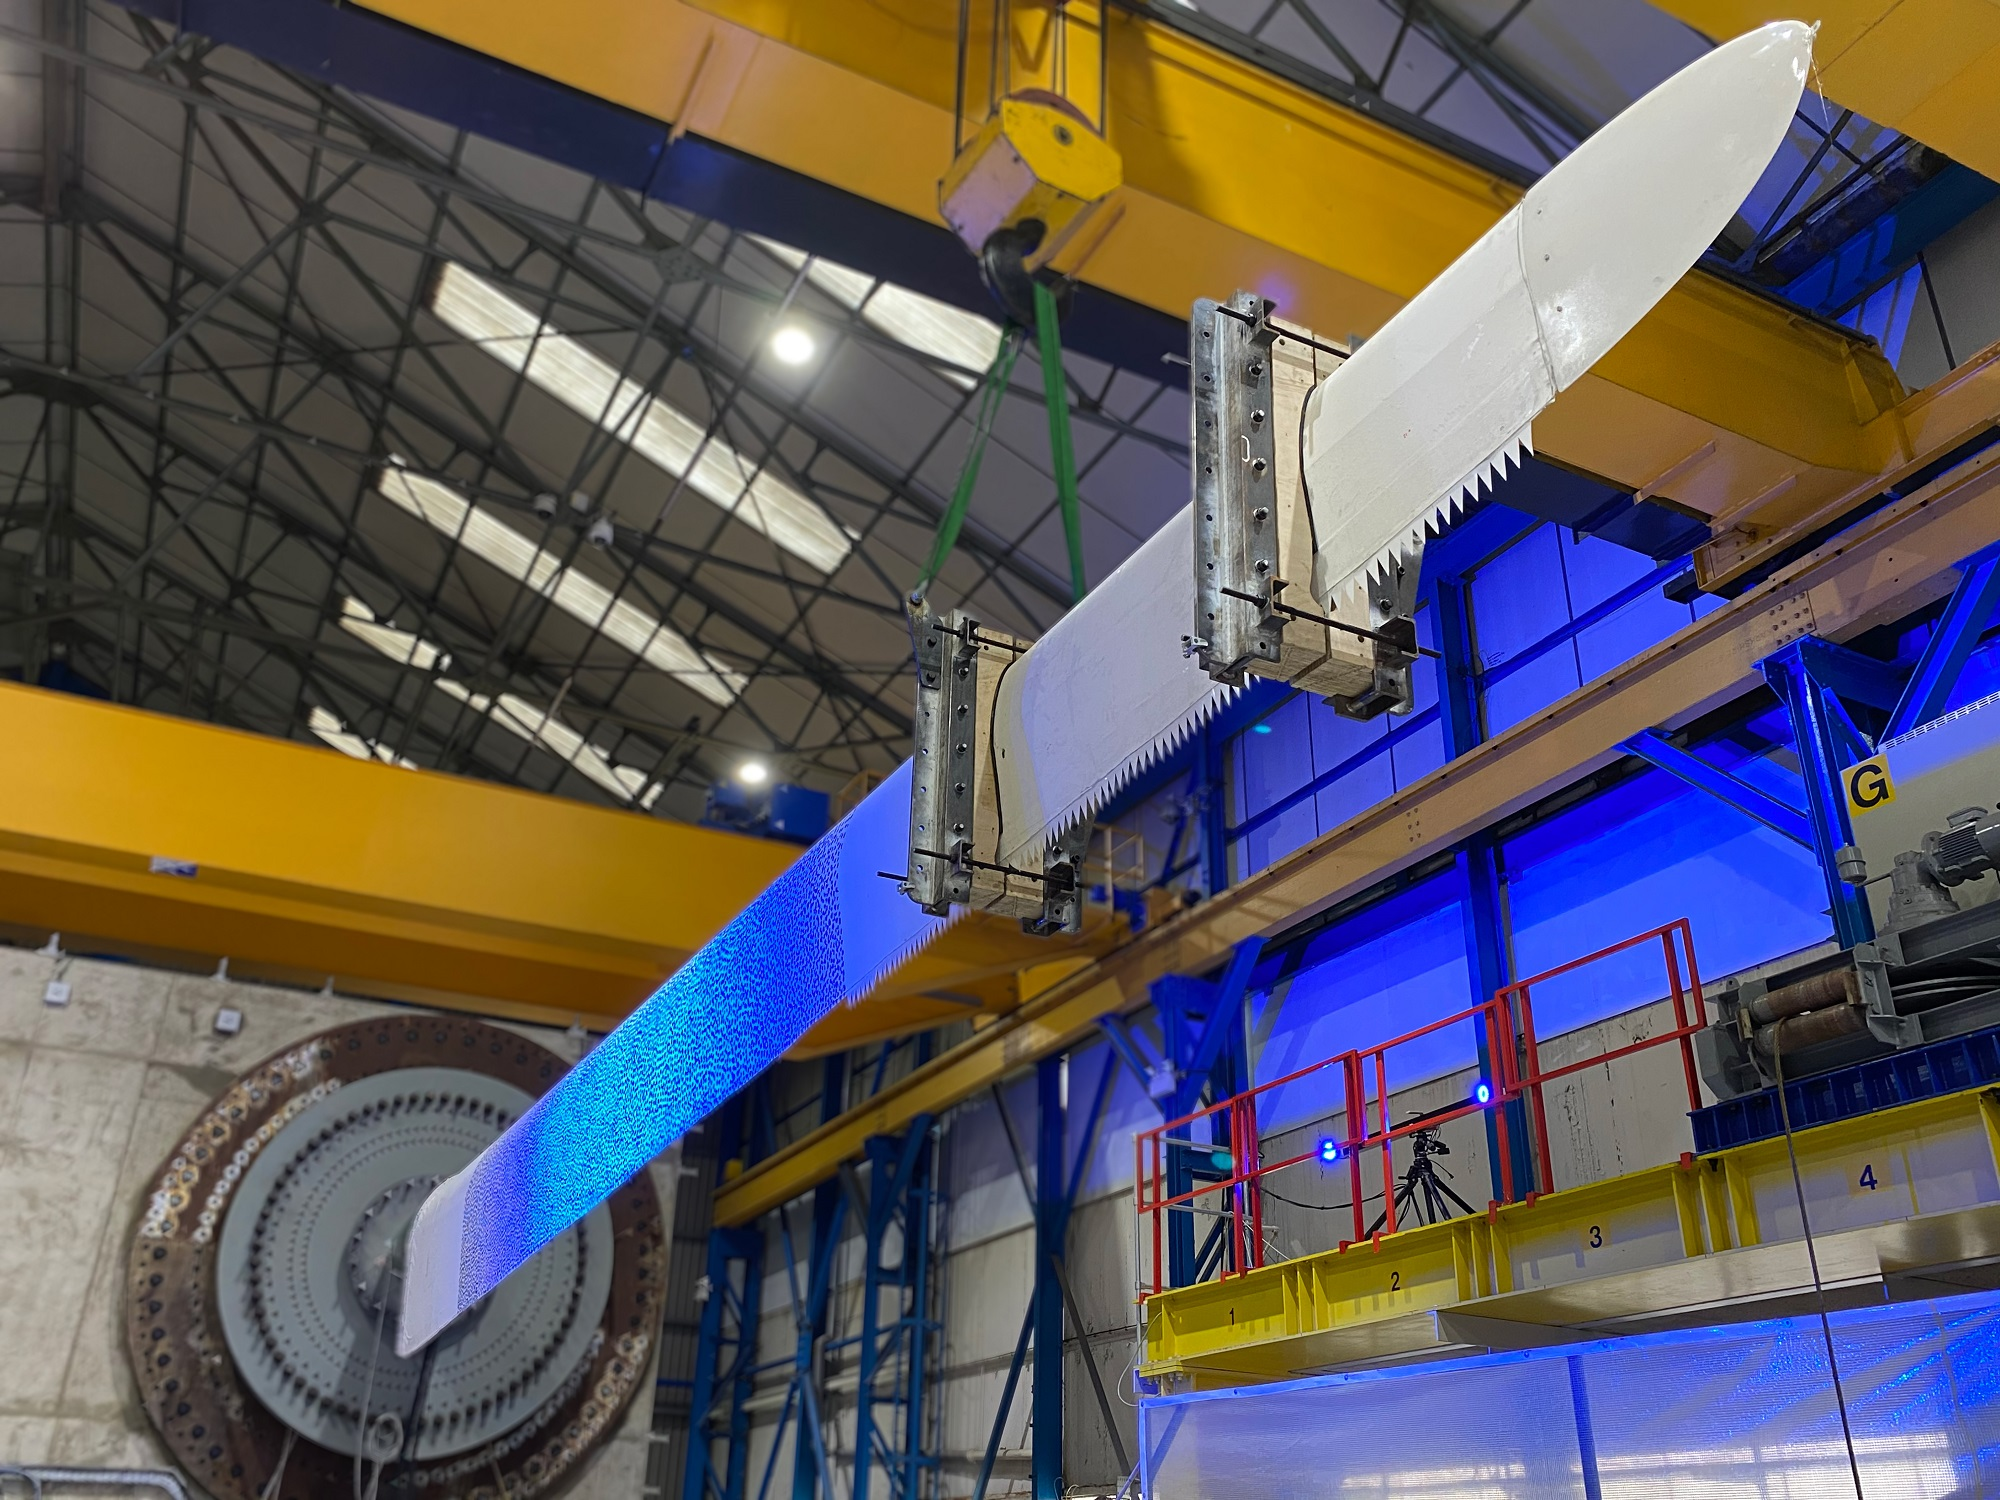 ACT Blade tests new wind turbine blade concept in Blyth